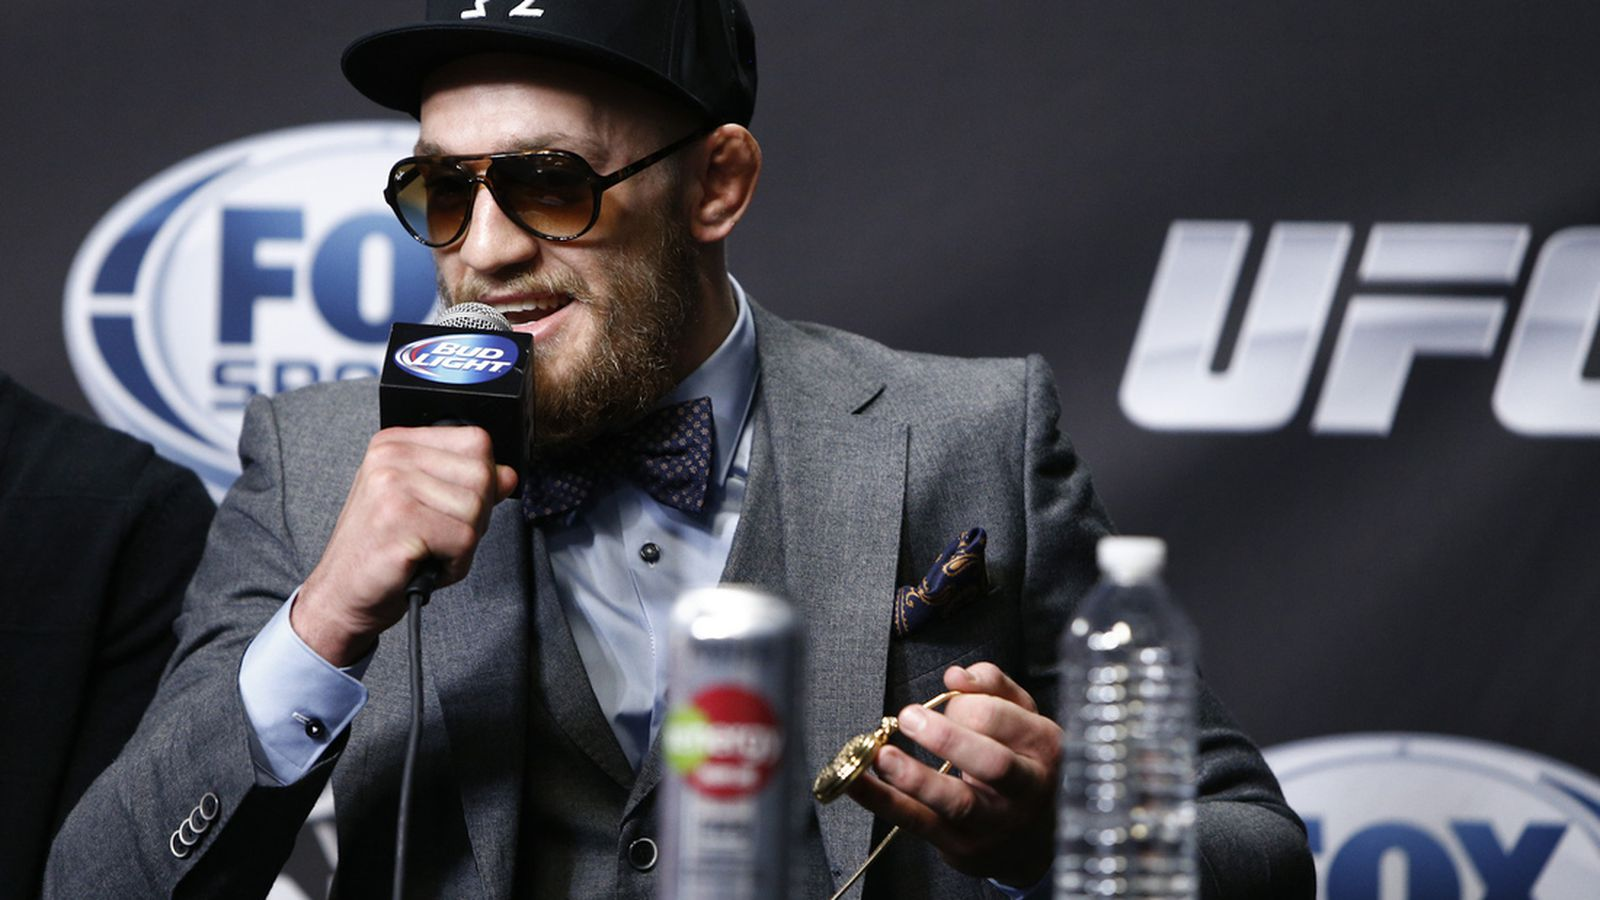 Get the latest fight results record history videos highlights and more for Conor McGregor on ESPNcom